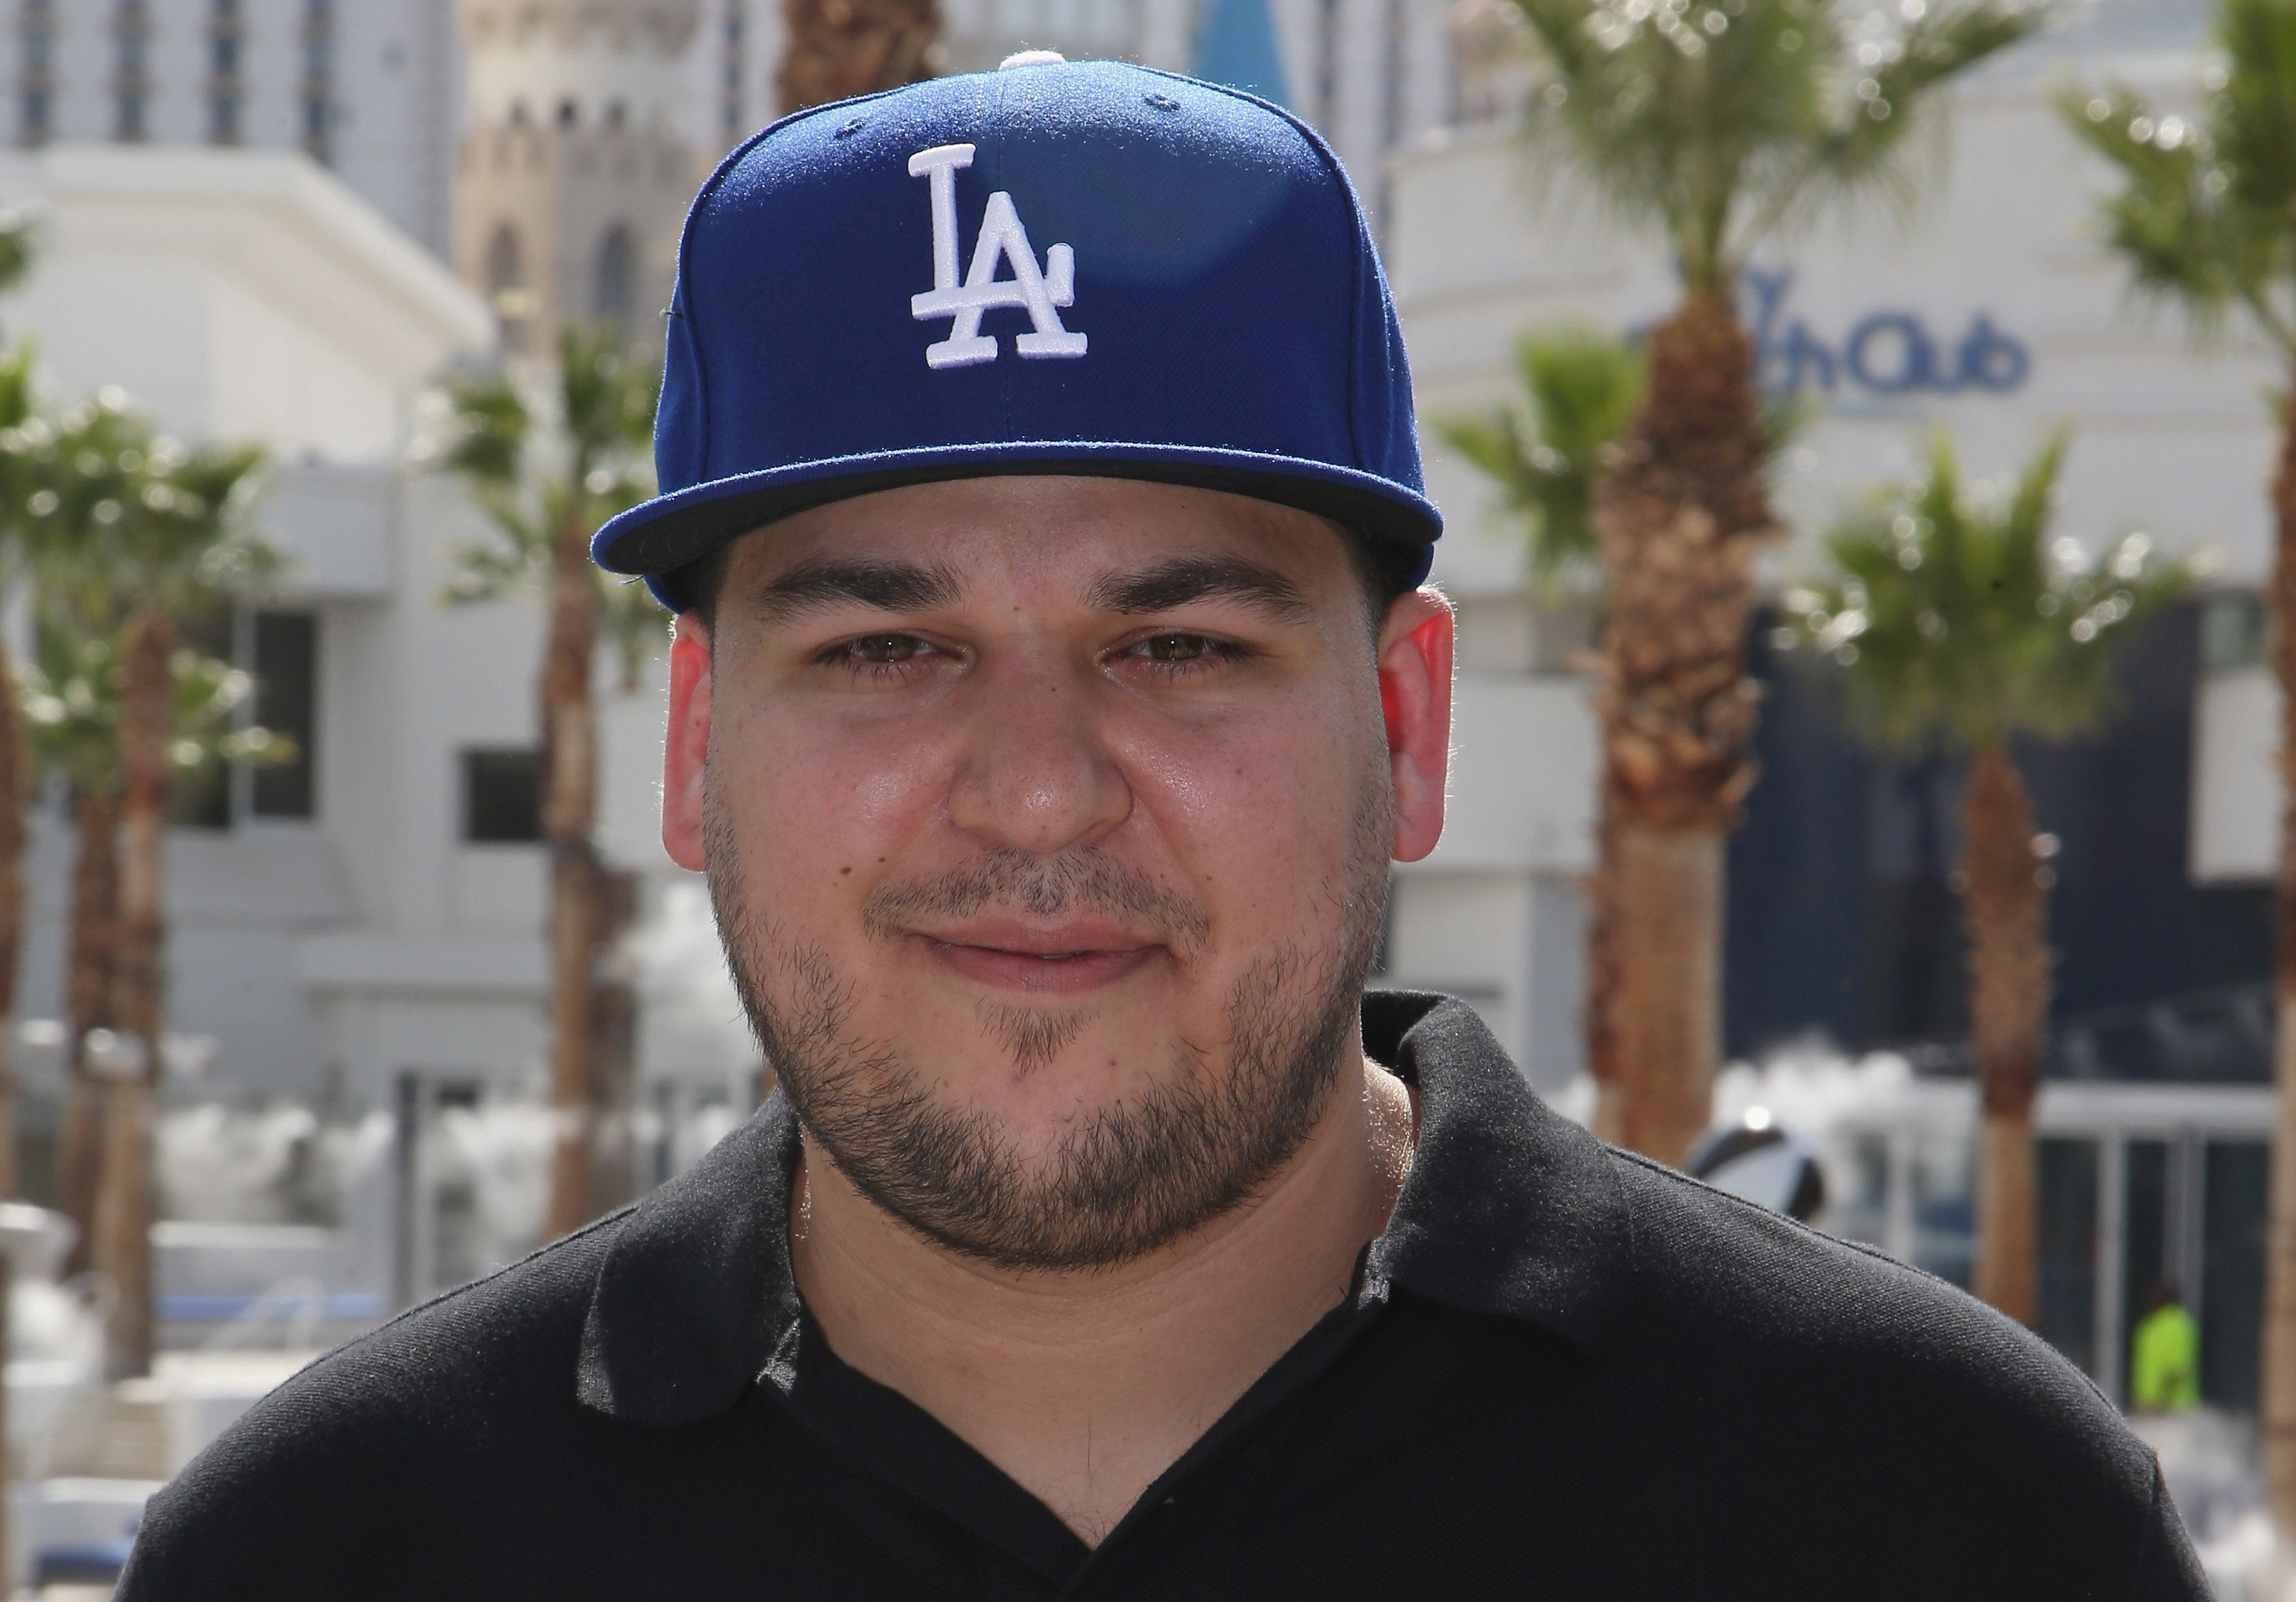 Rob Kardashian attends the Sky Beach Club at the Tropicana Las Vegas on May 28, 2016 in Las Vegas, Nevada.